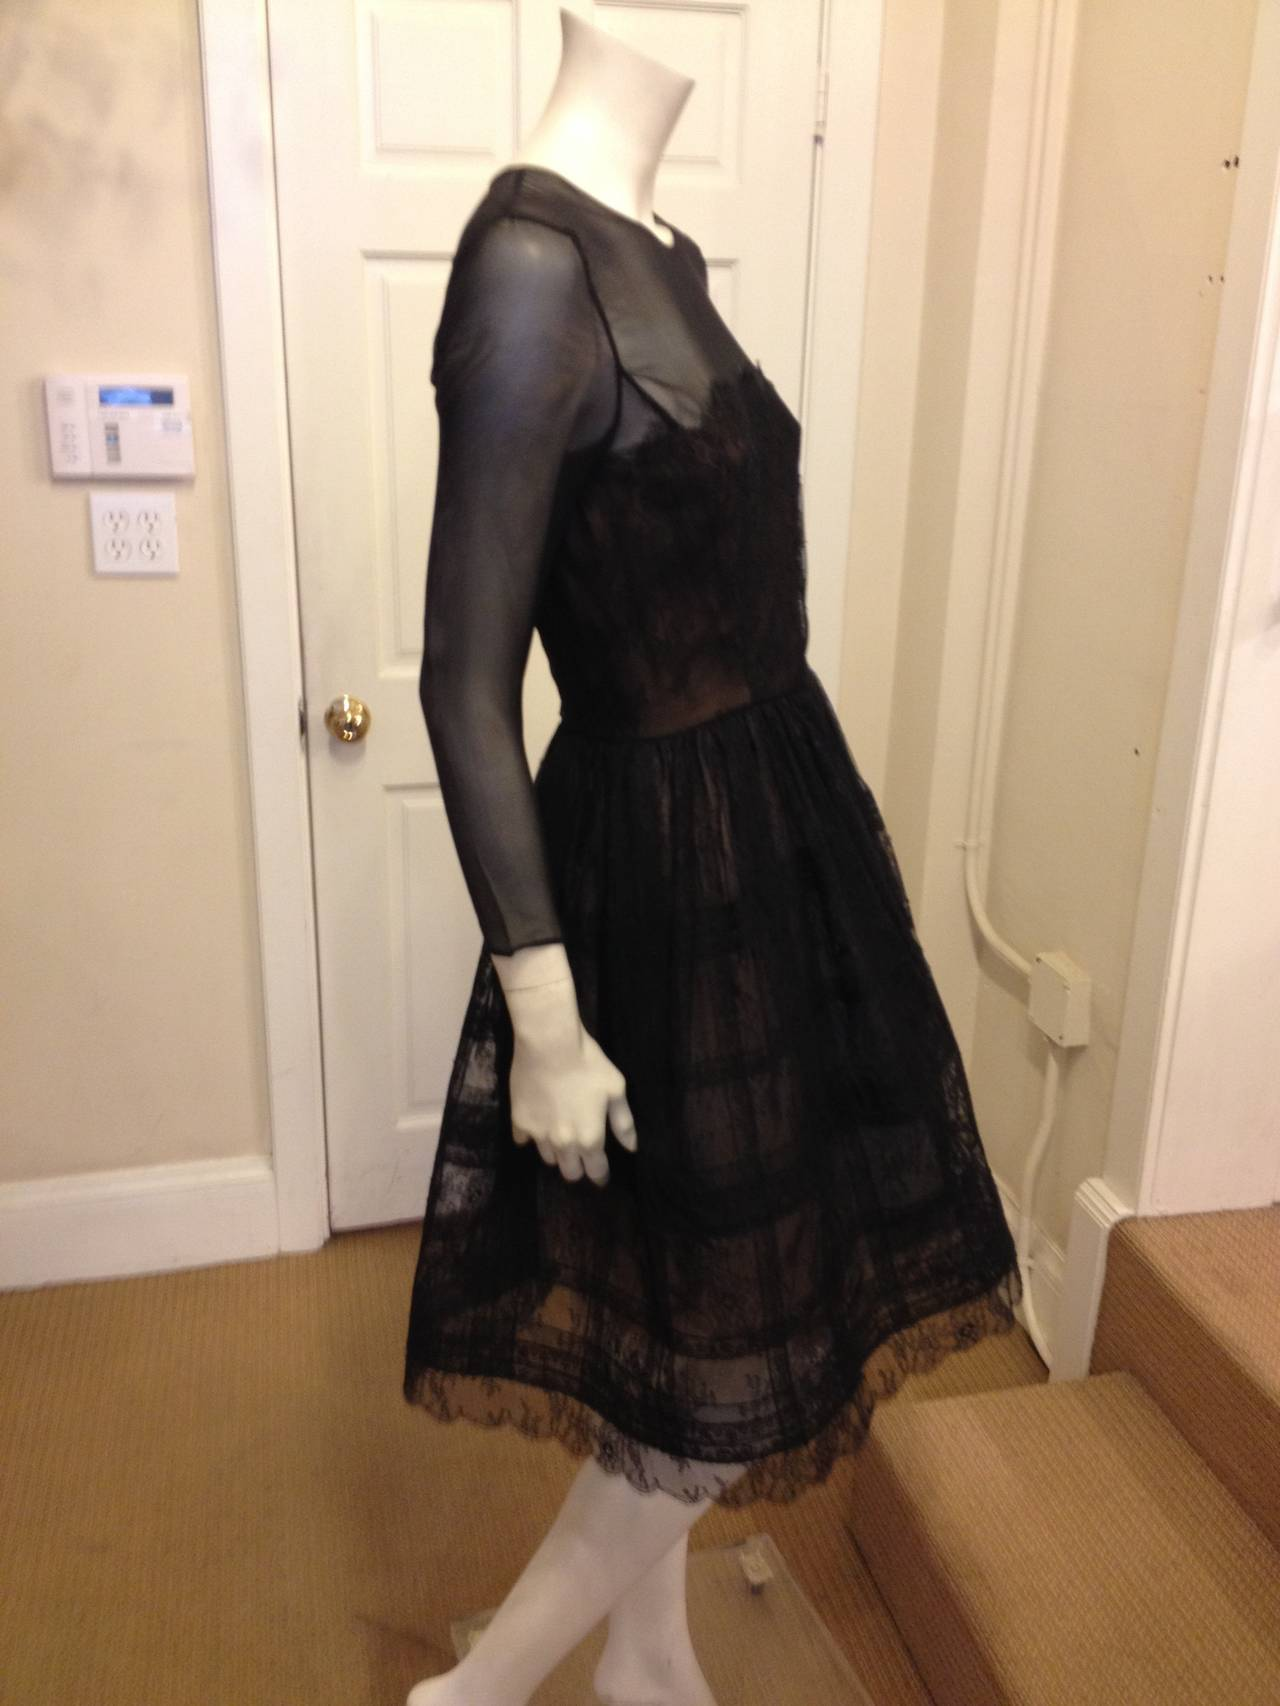 Oscar de la Renta Black Sheer Lace Dress 2